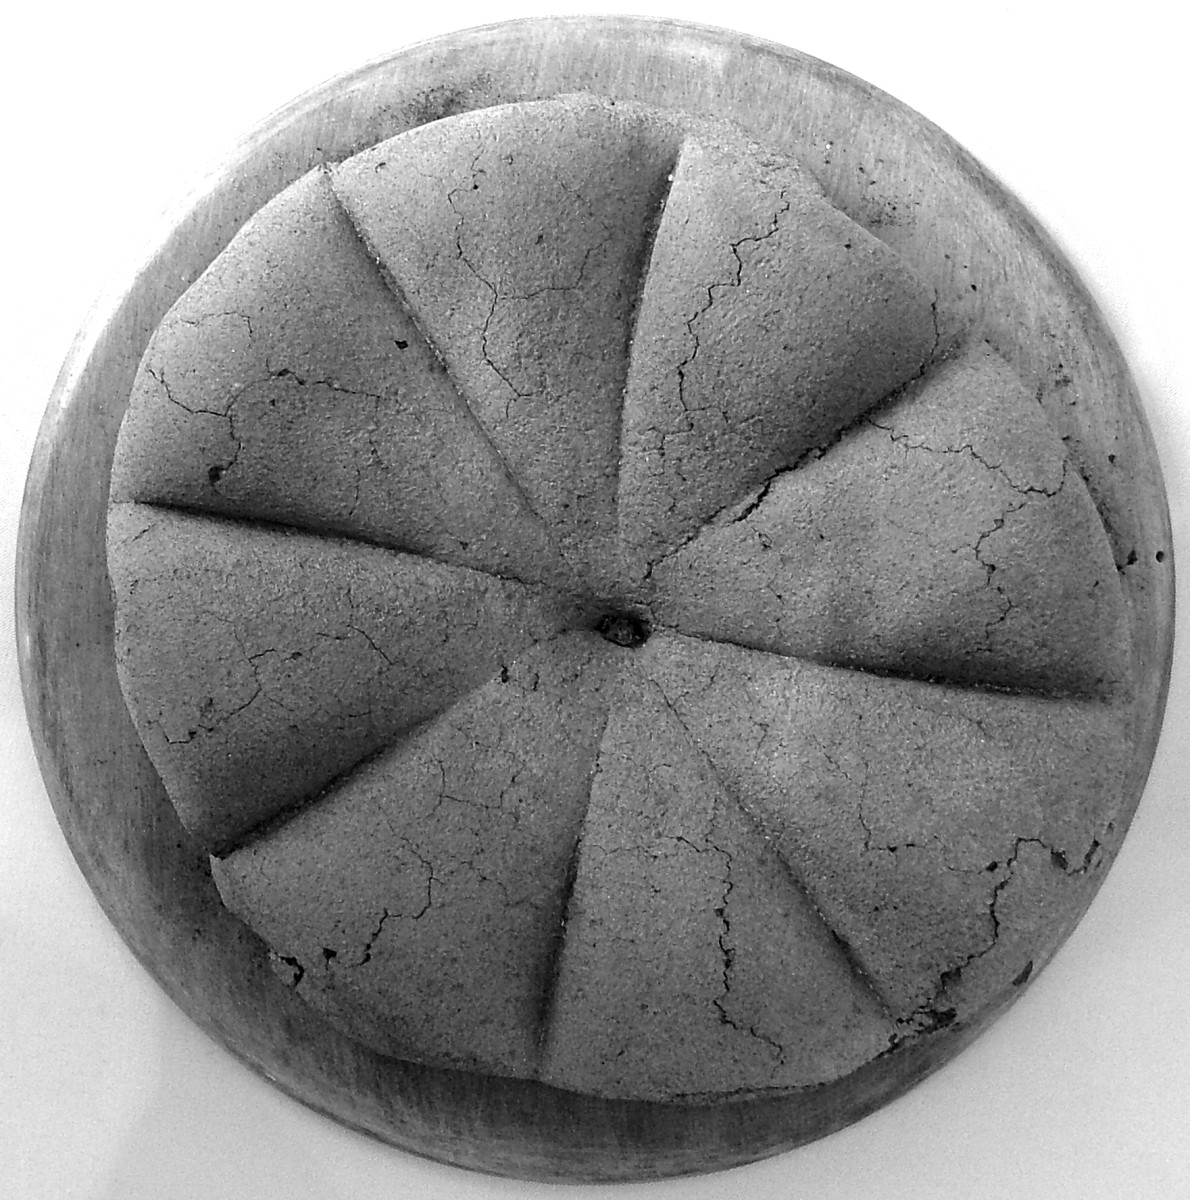 Pompeii, a loaf of Roman bread preserved for 2000 years